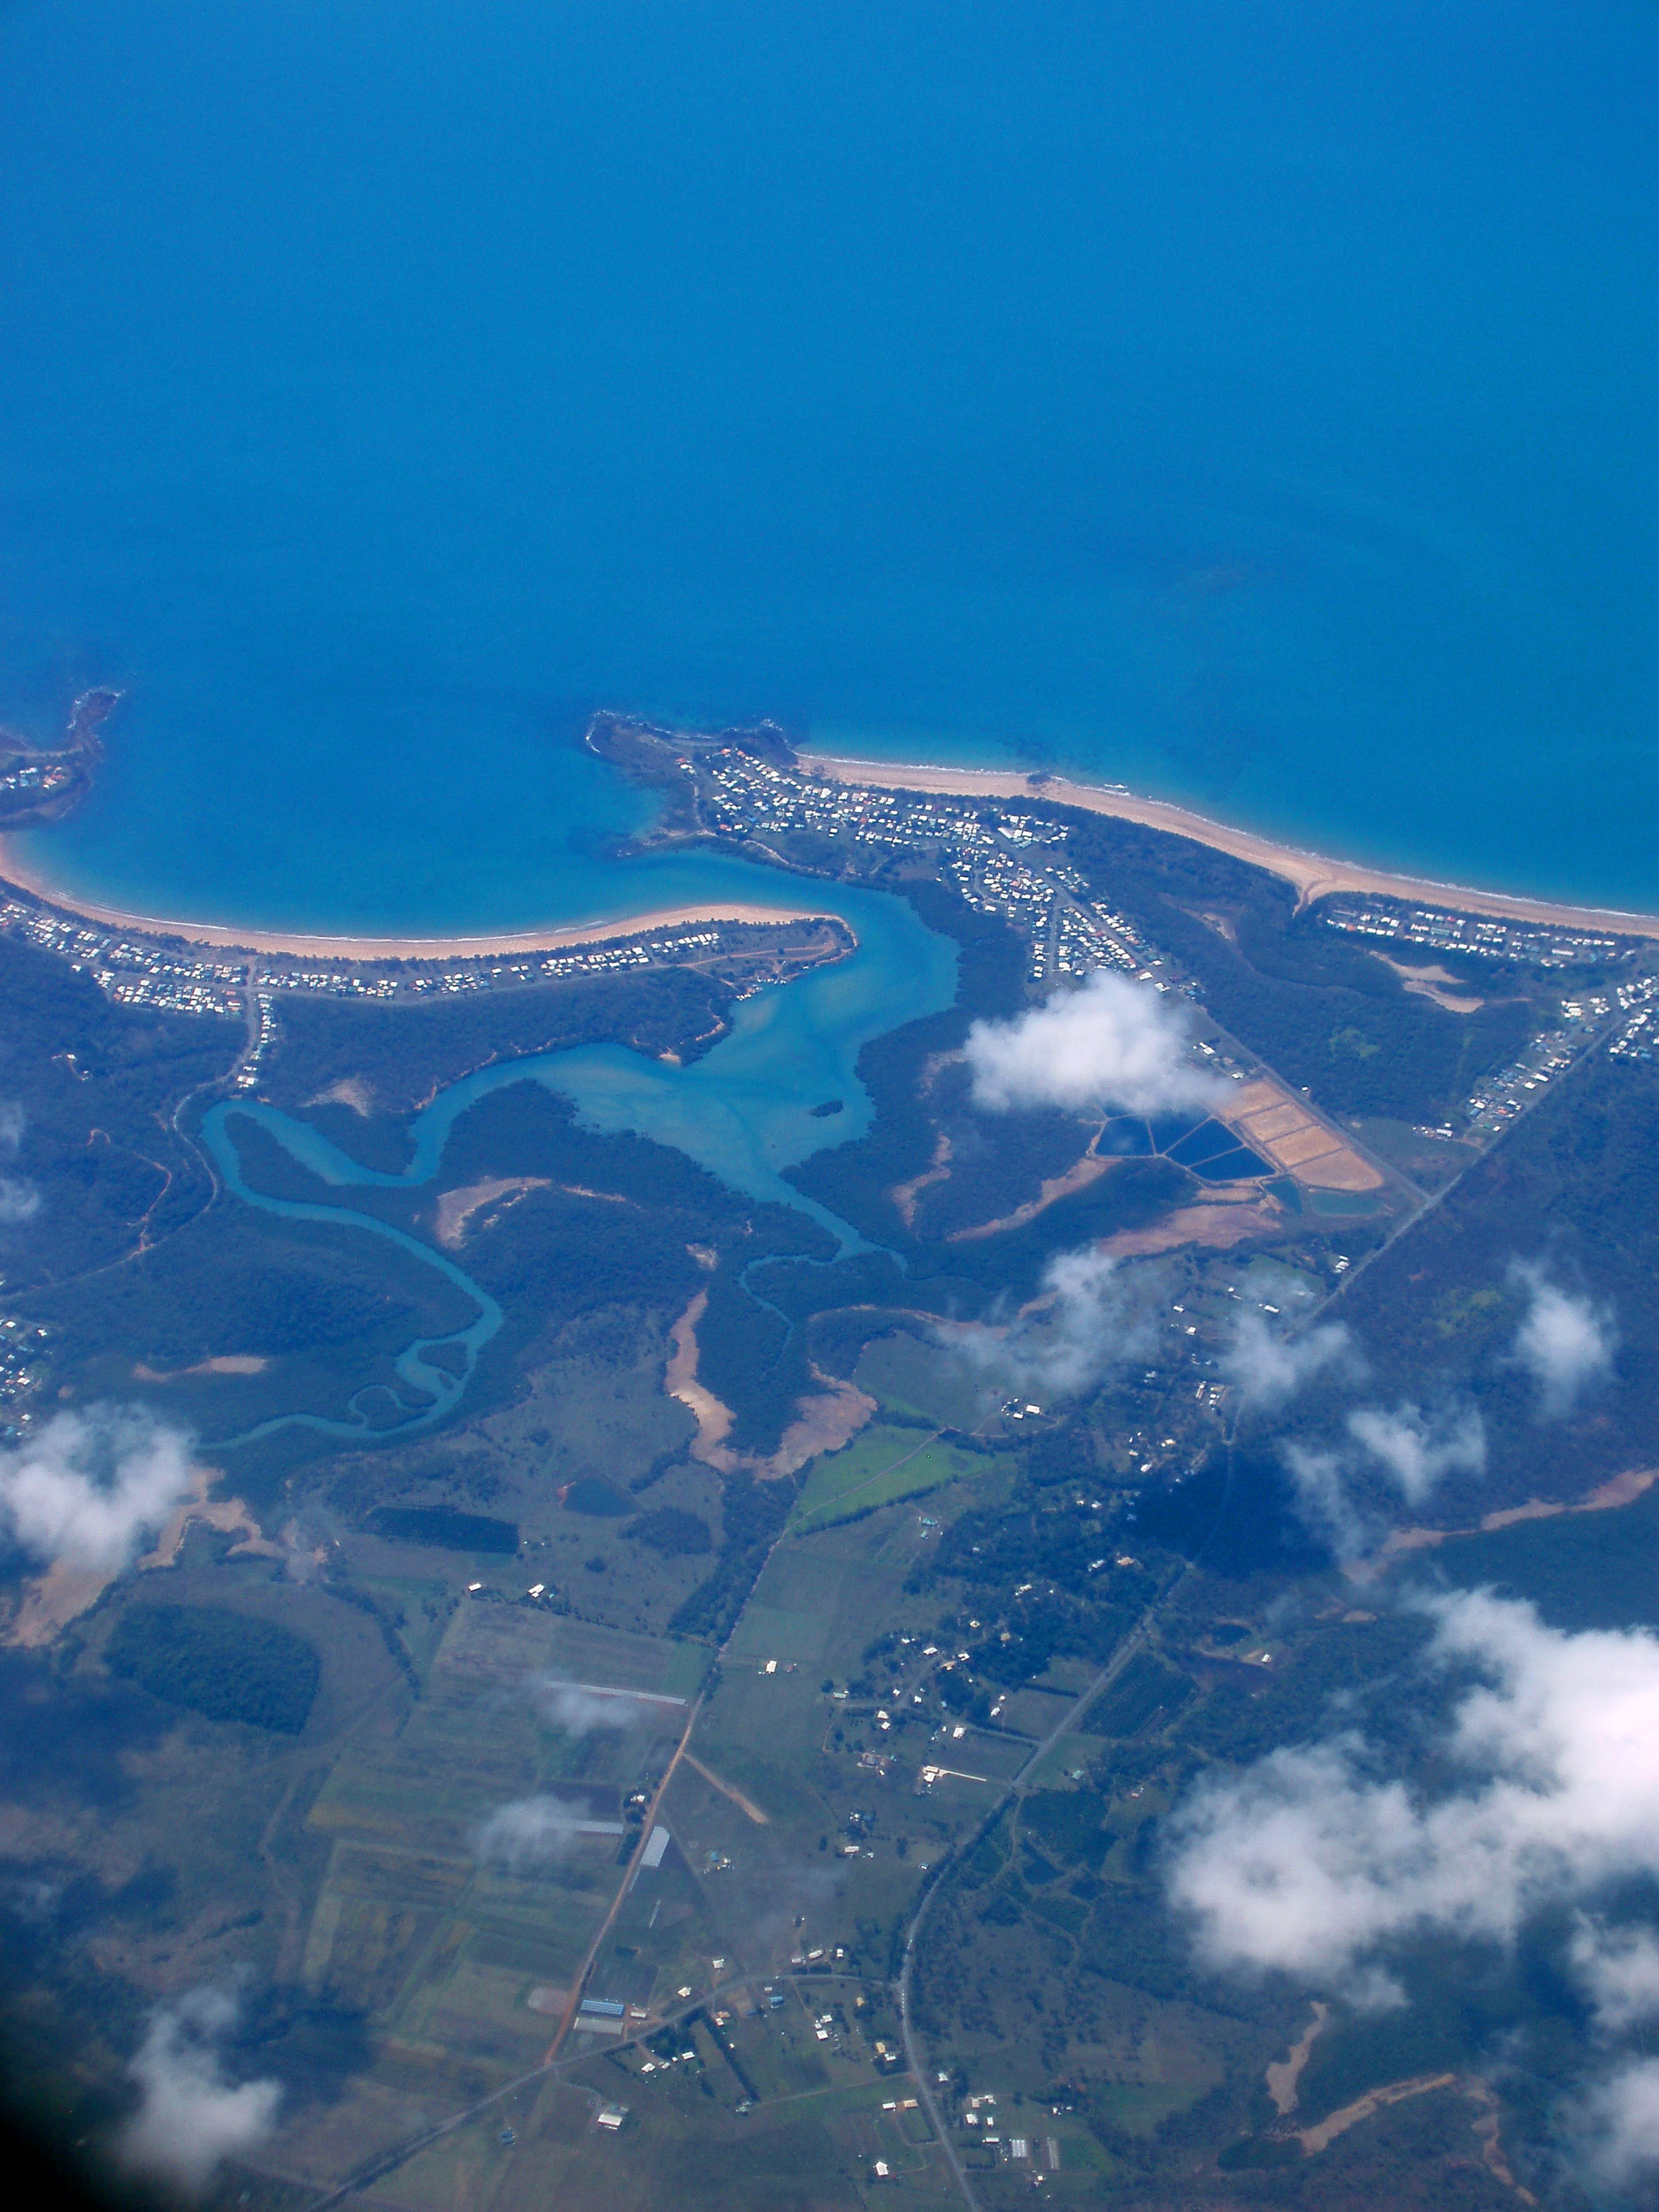 an aerial view of campwin beach, north queensland